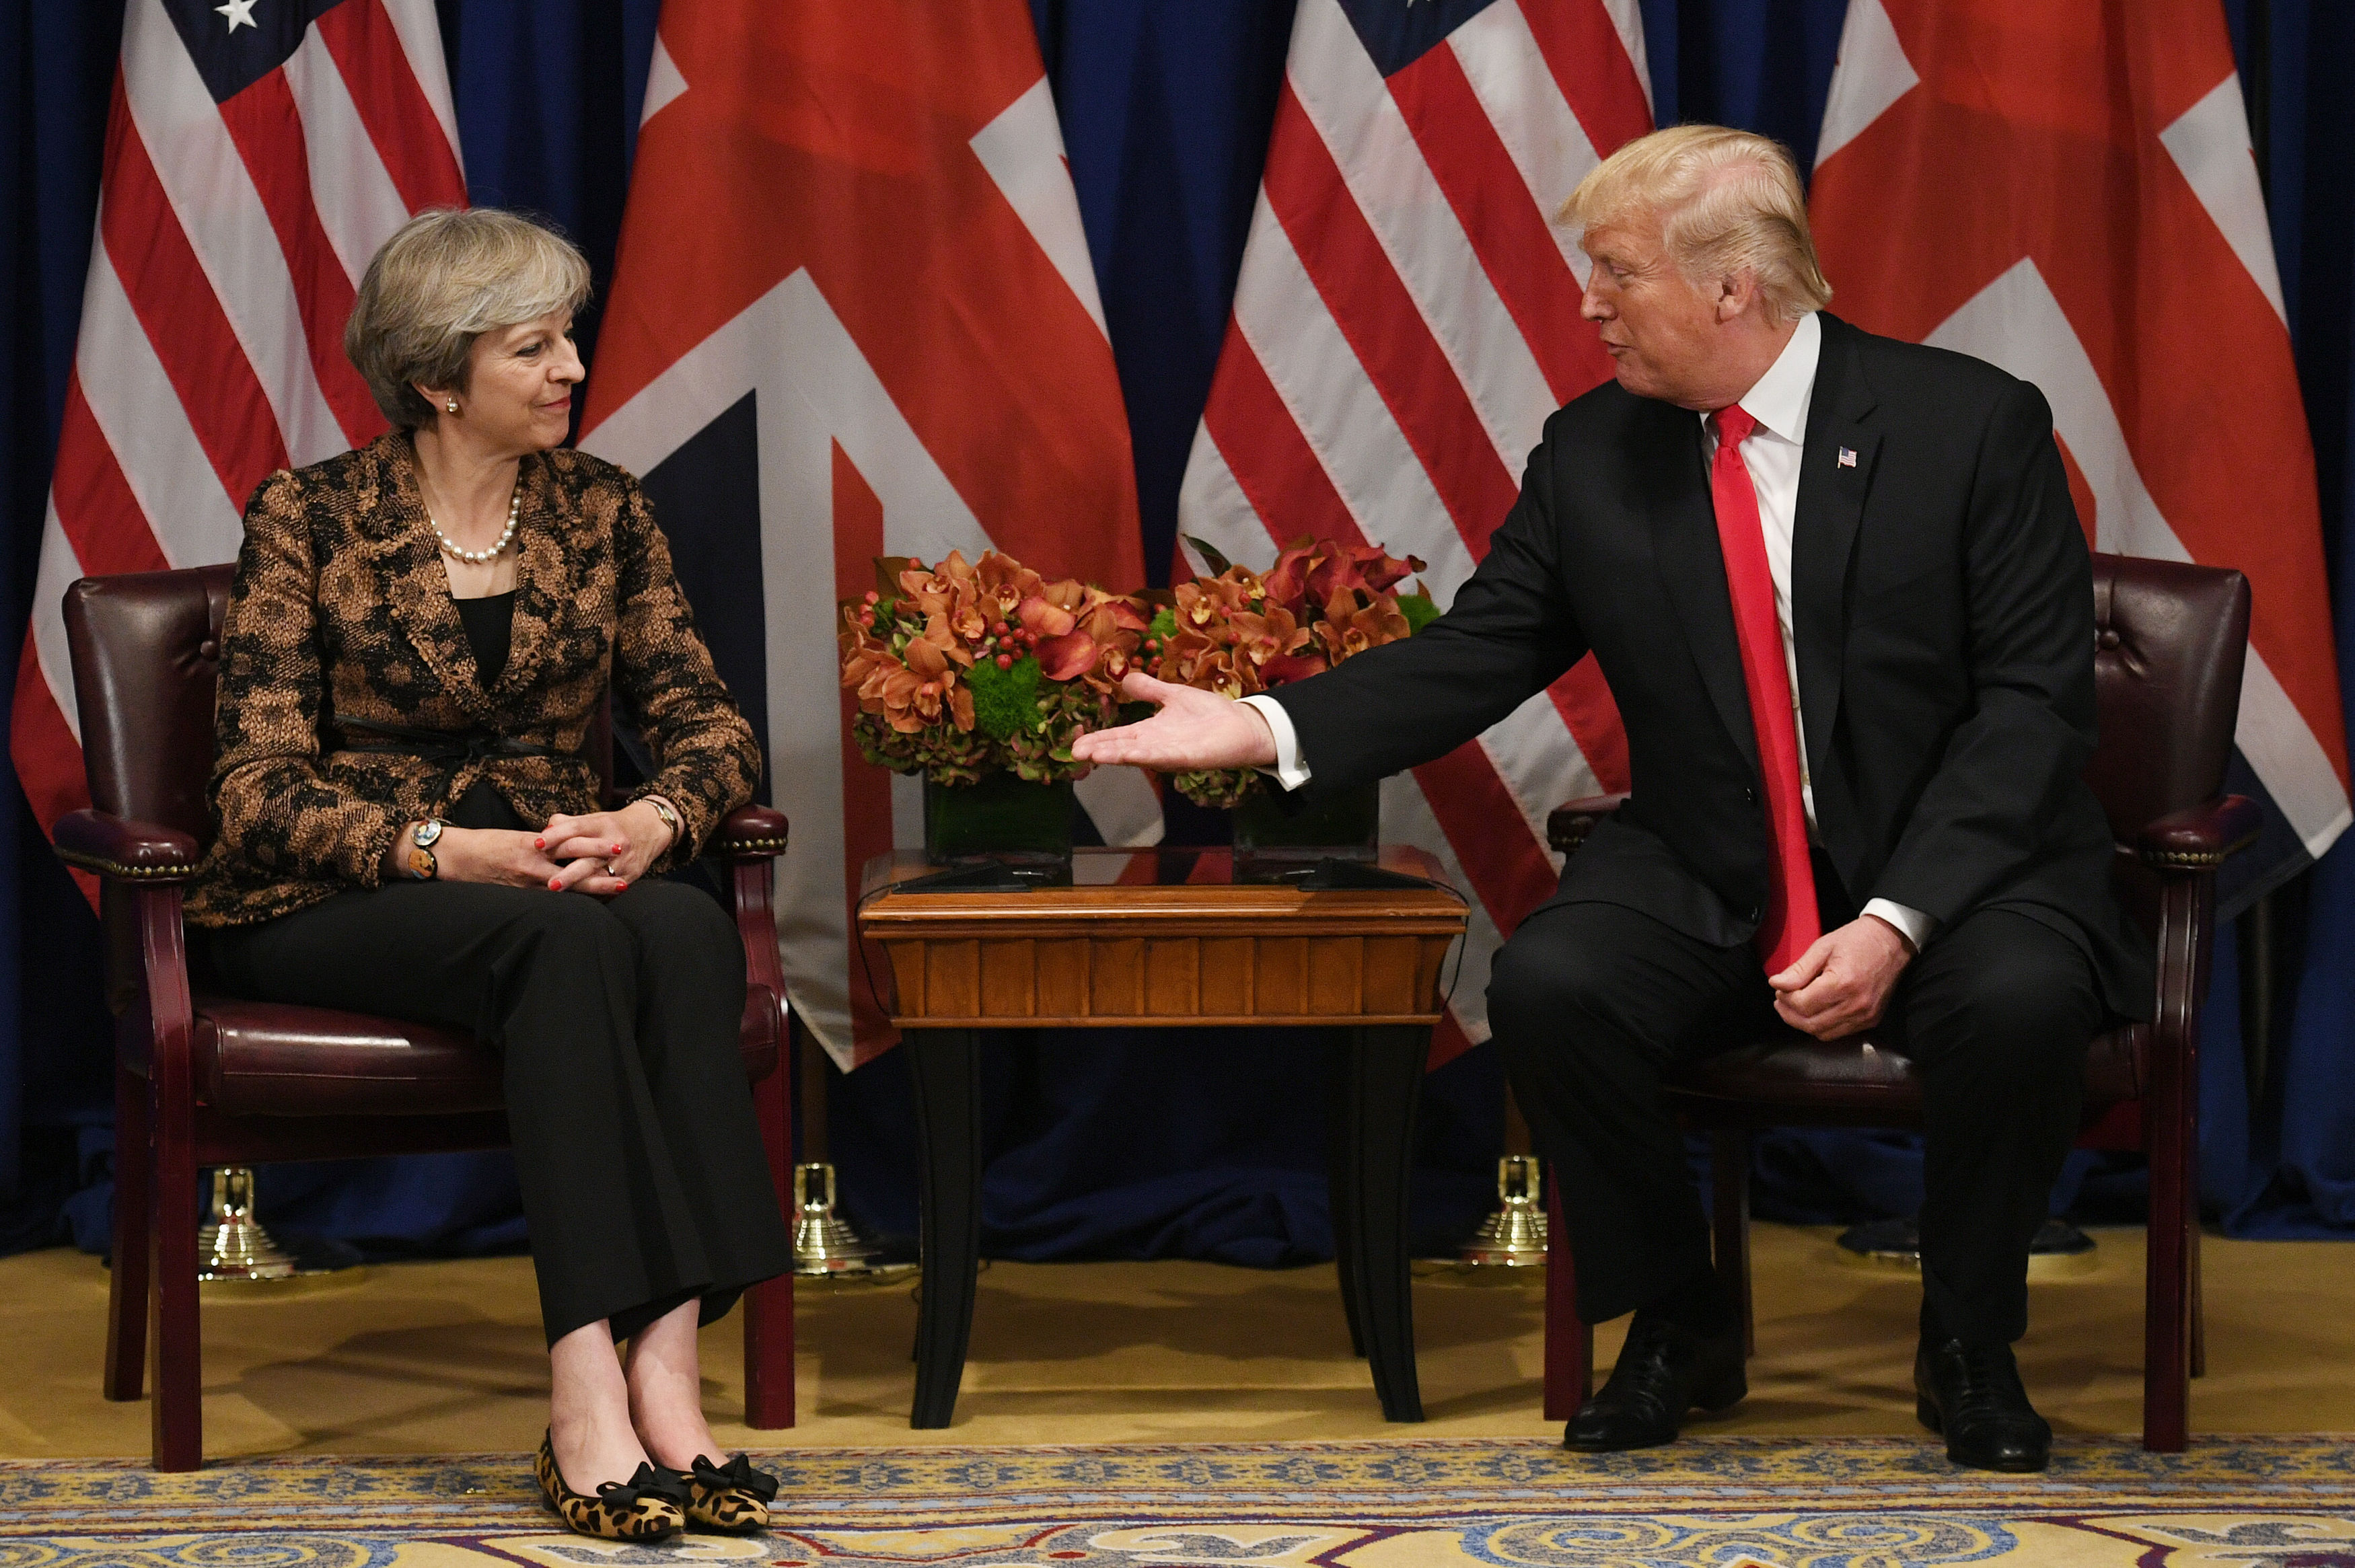 The pair met when the British PM visited the US last year. Credit: PA